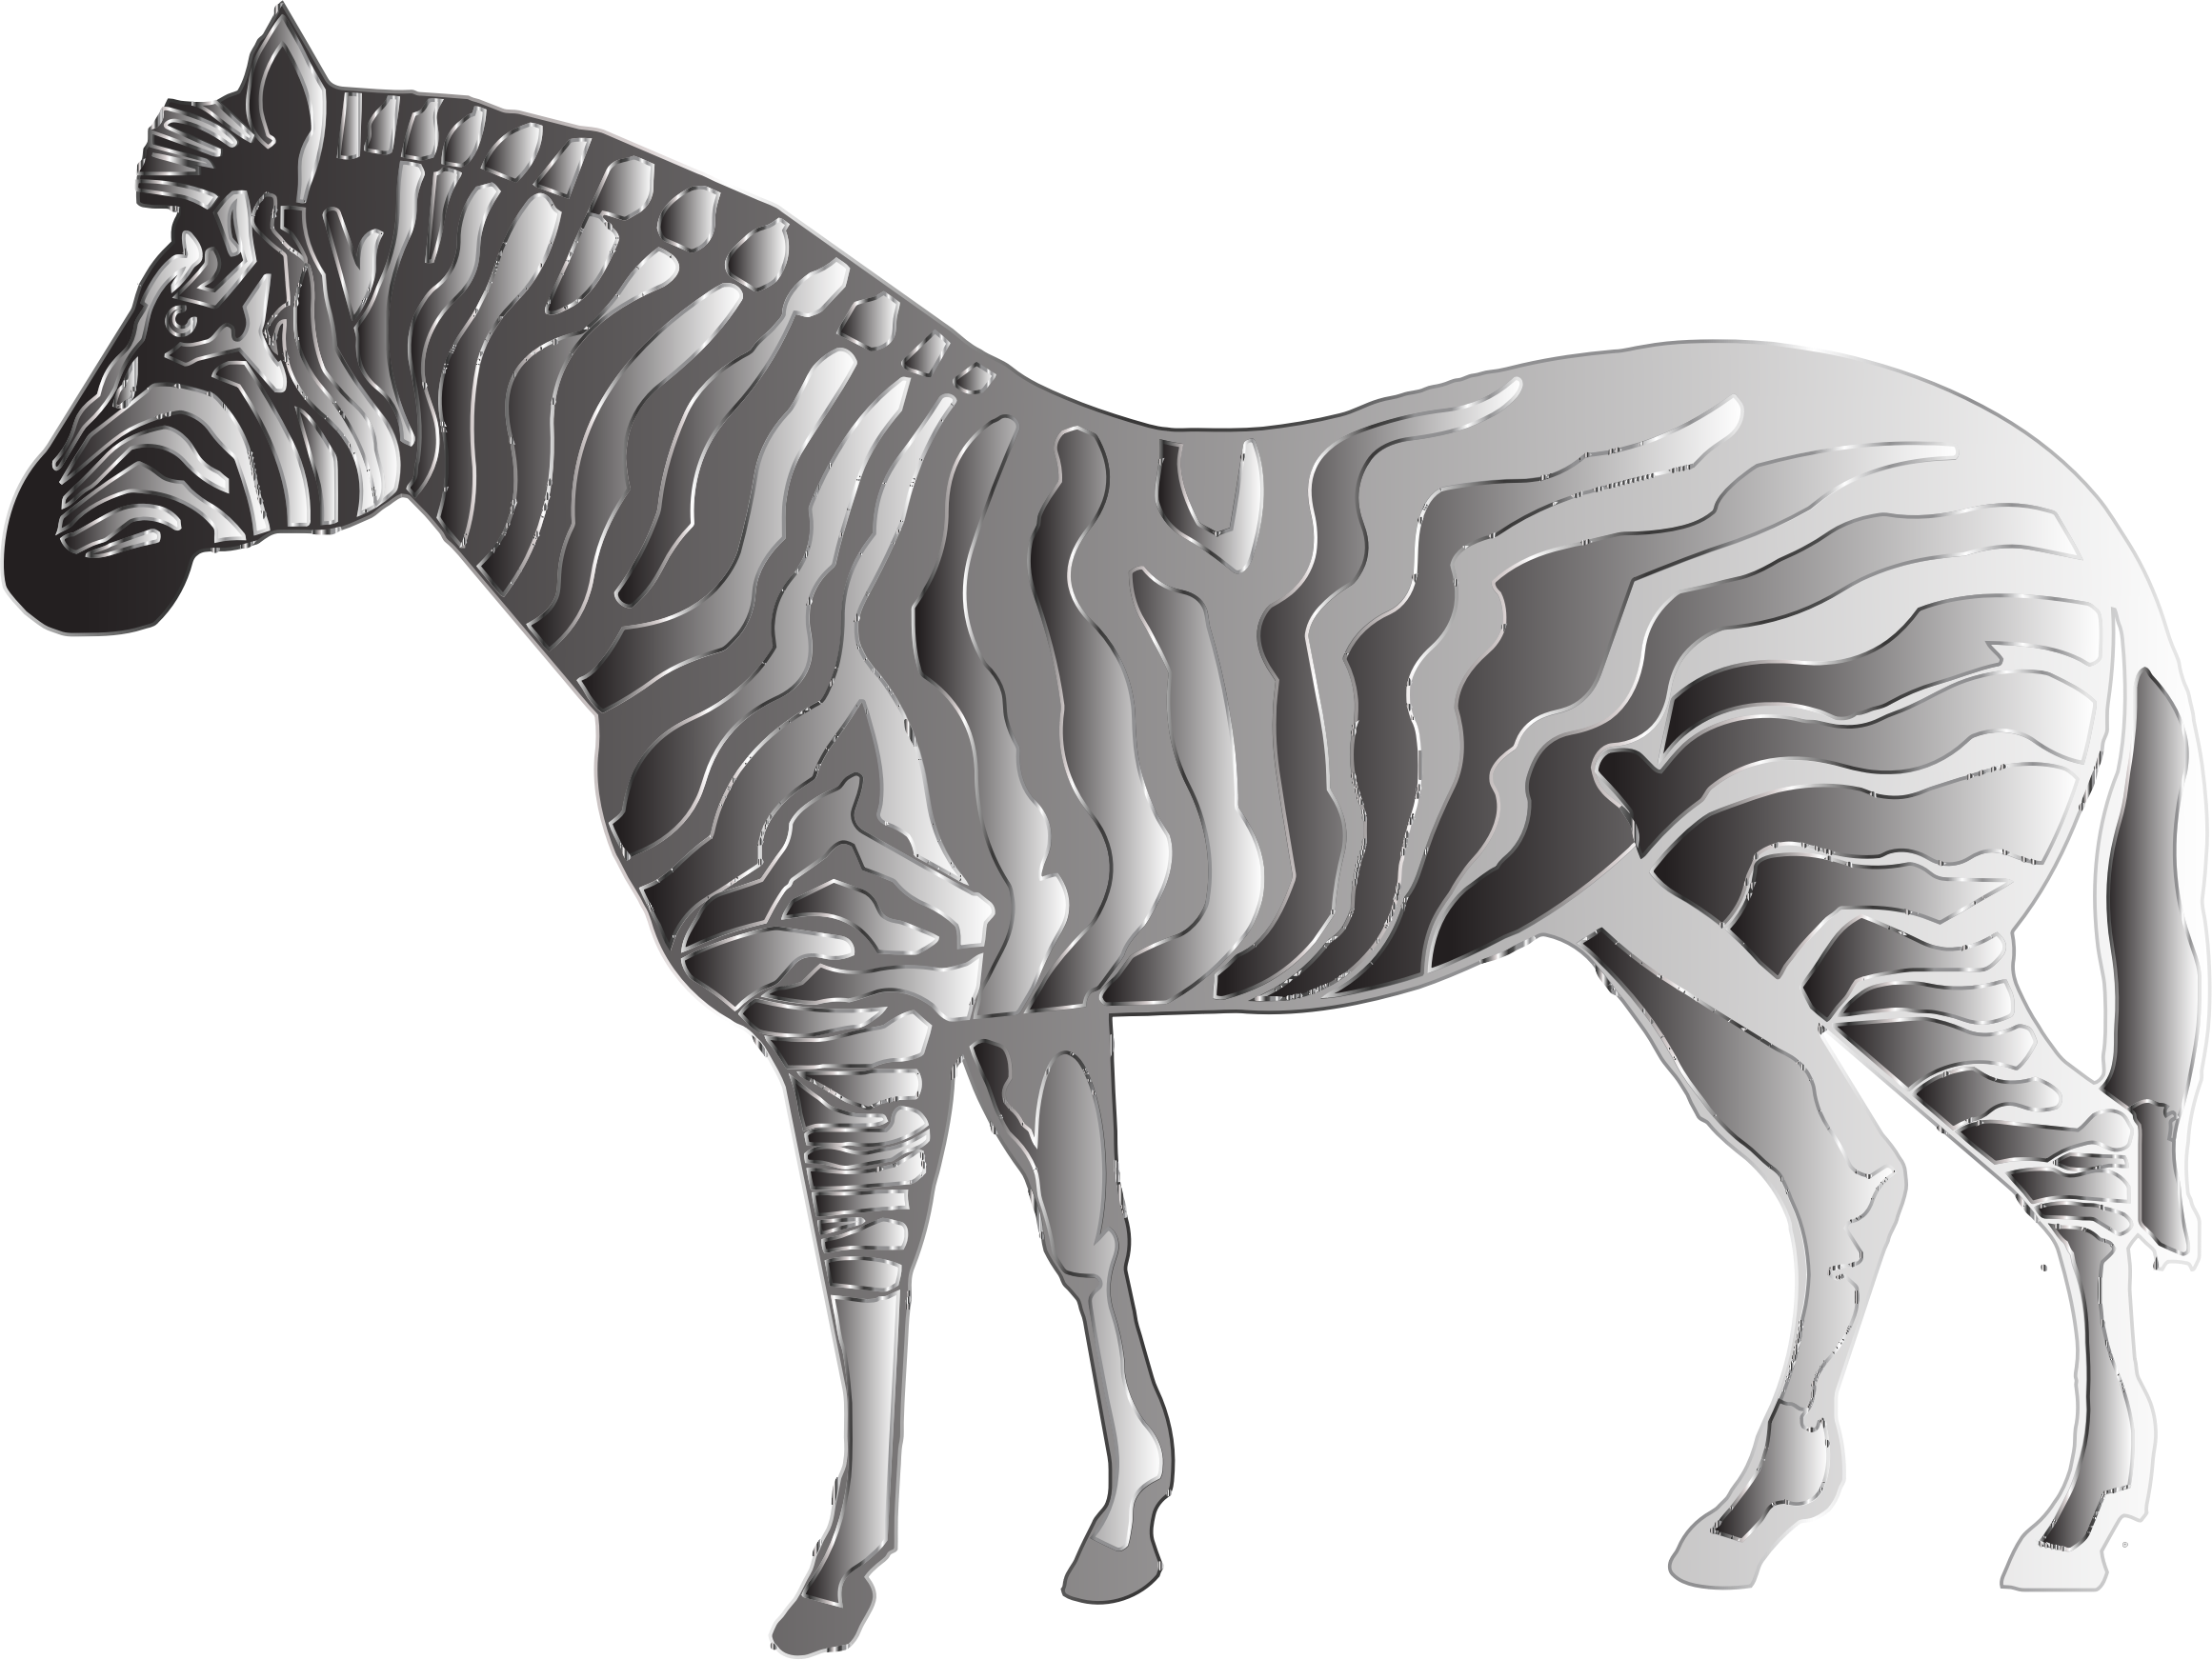 Monochrome Zebra 2 by GDJ